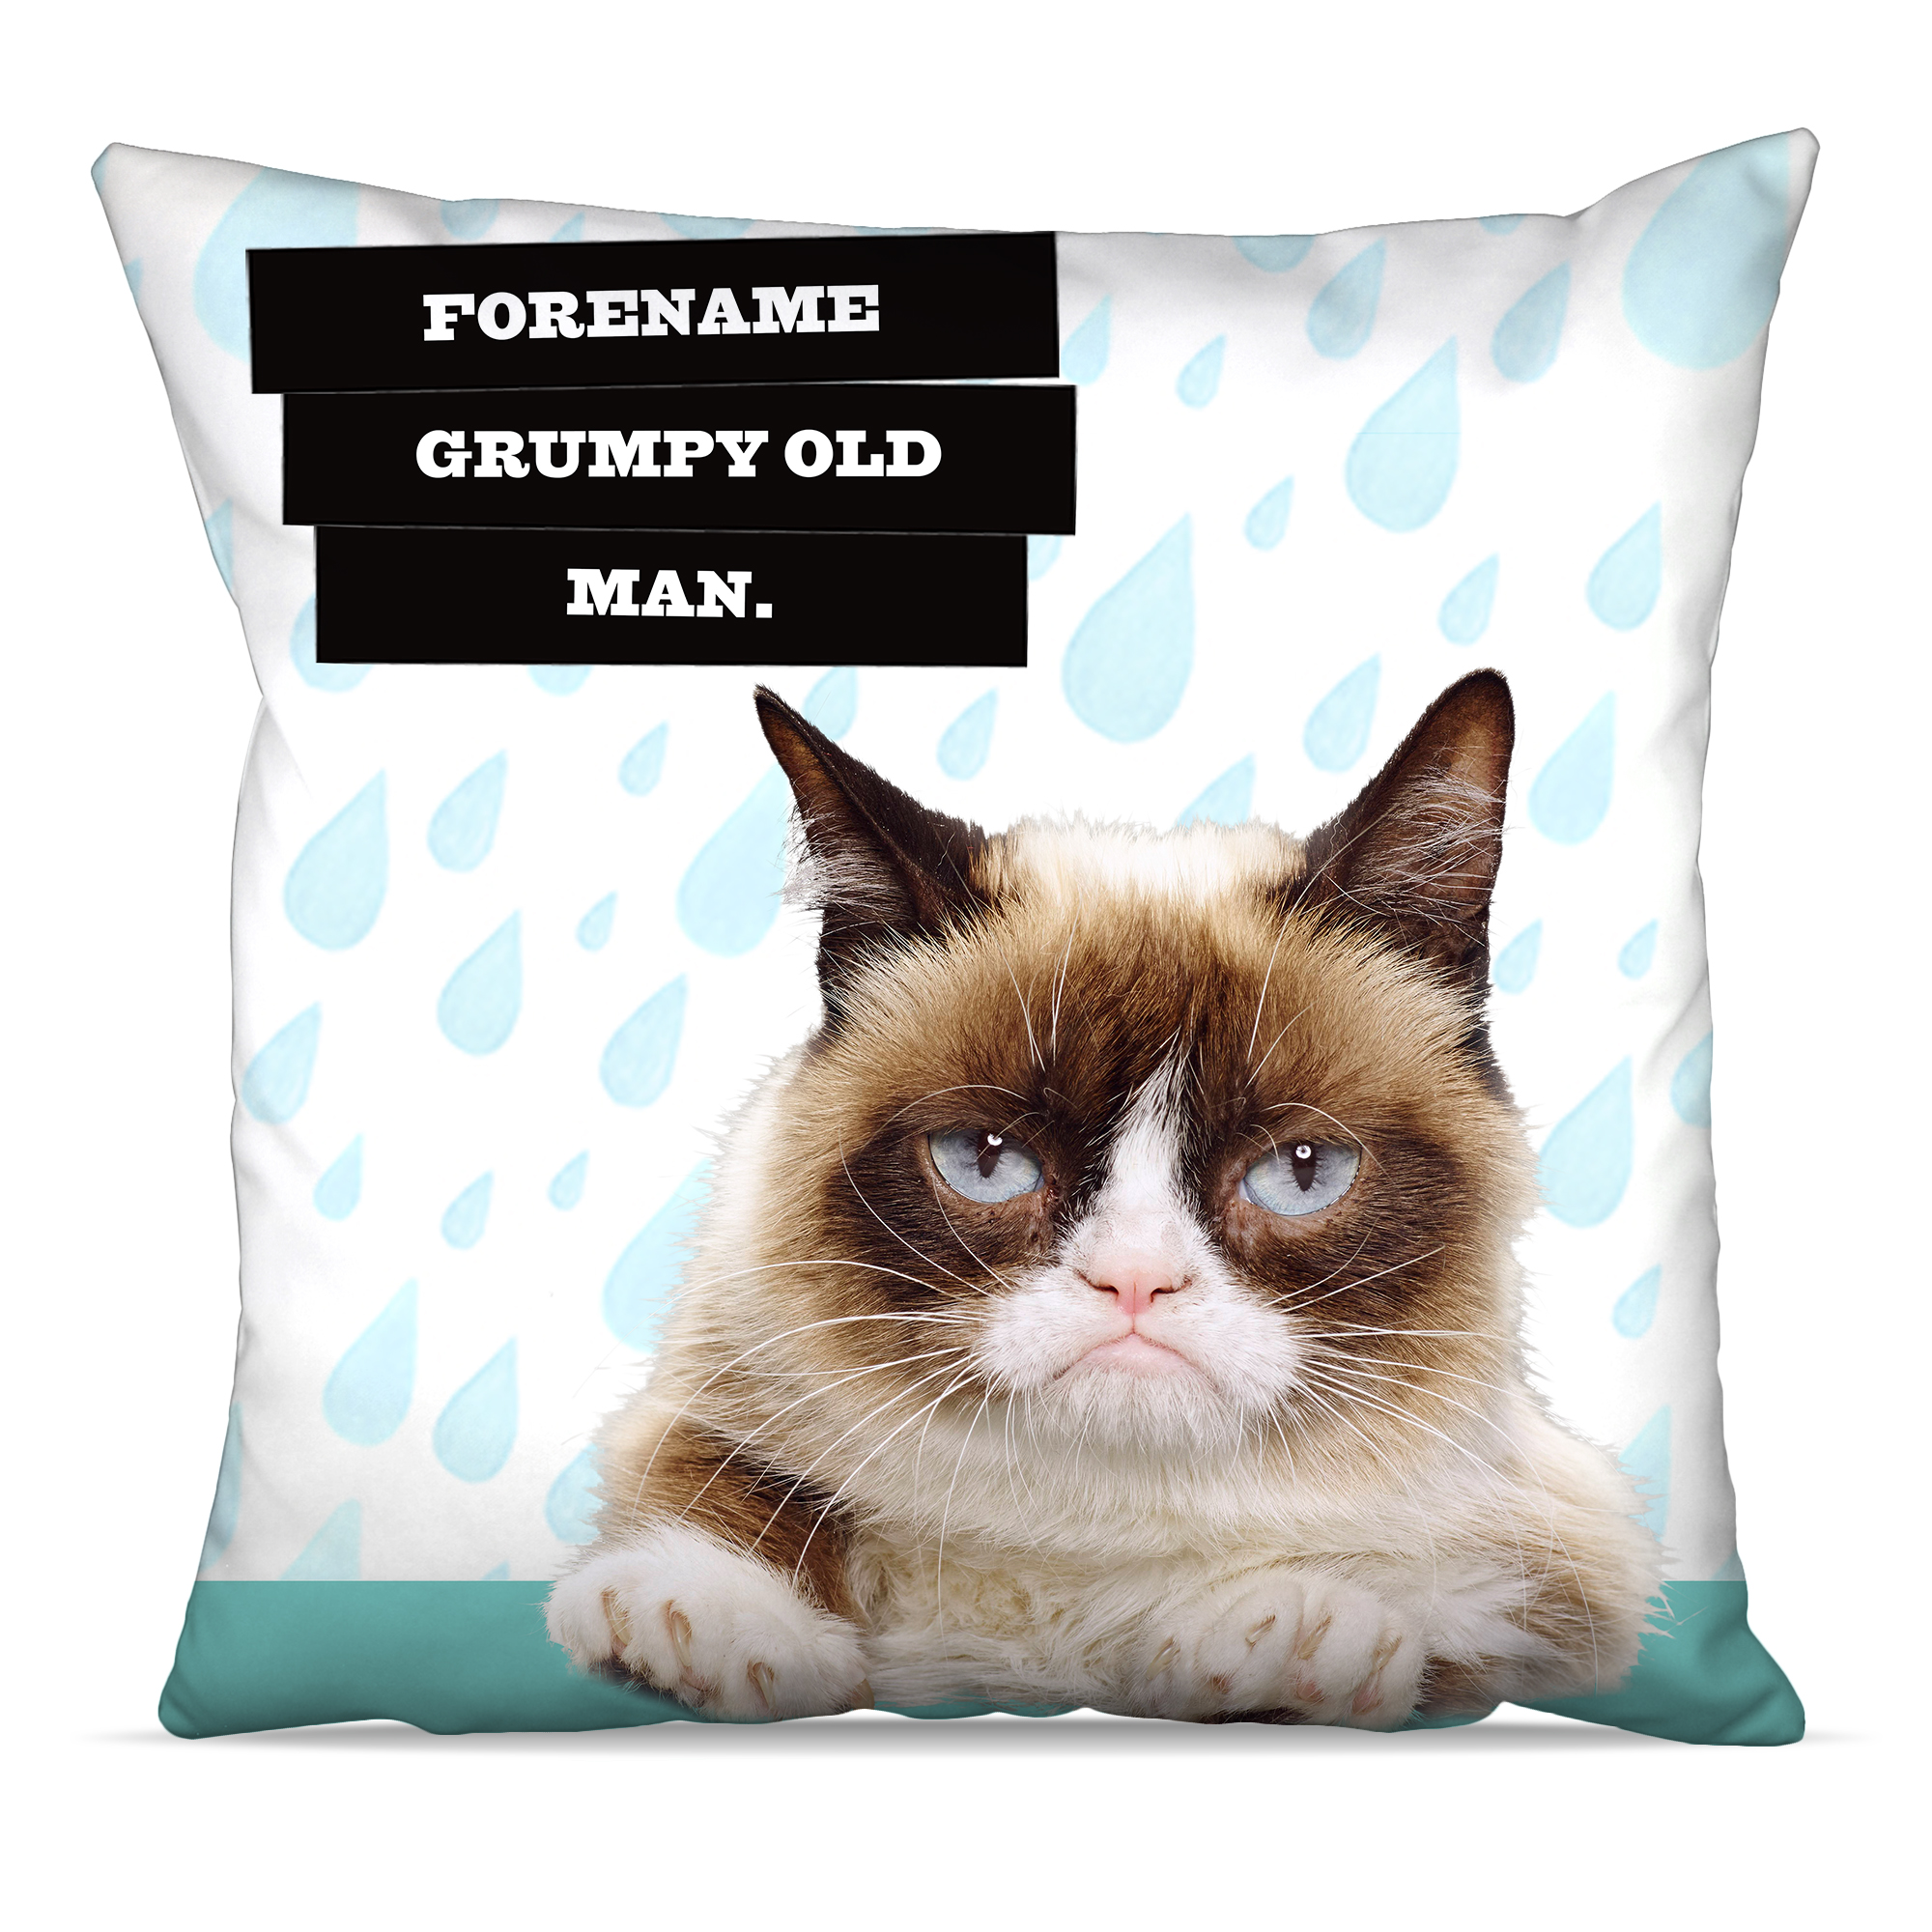 Grumpy Cat - Old Man Raindrop Cushion